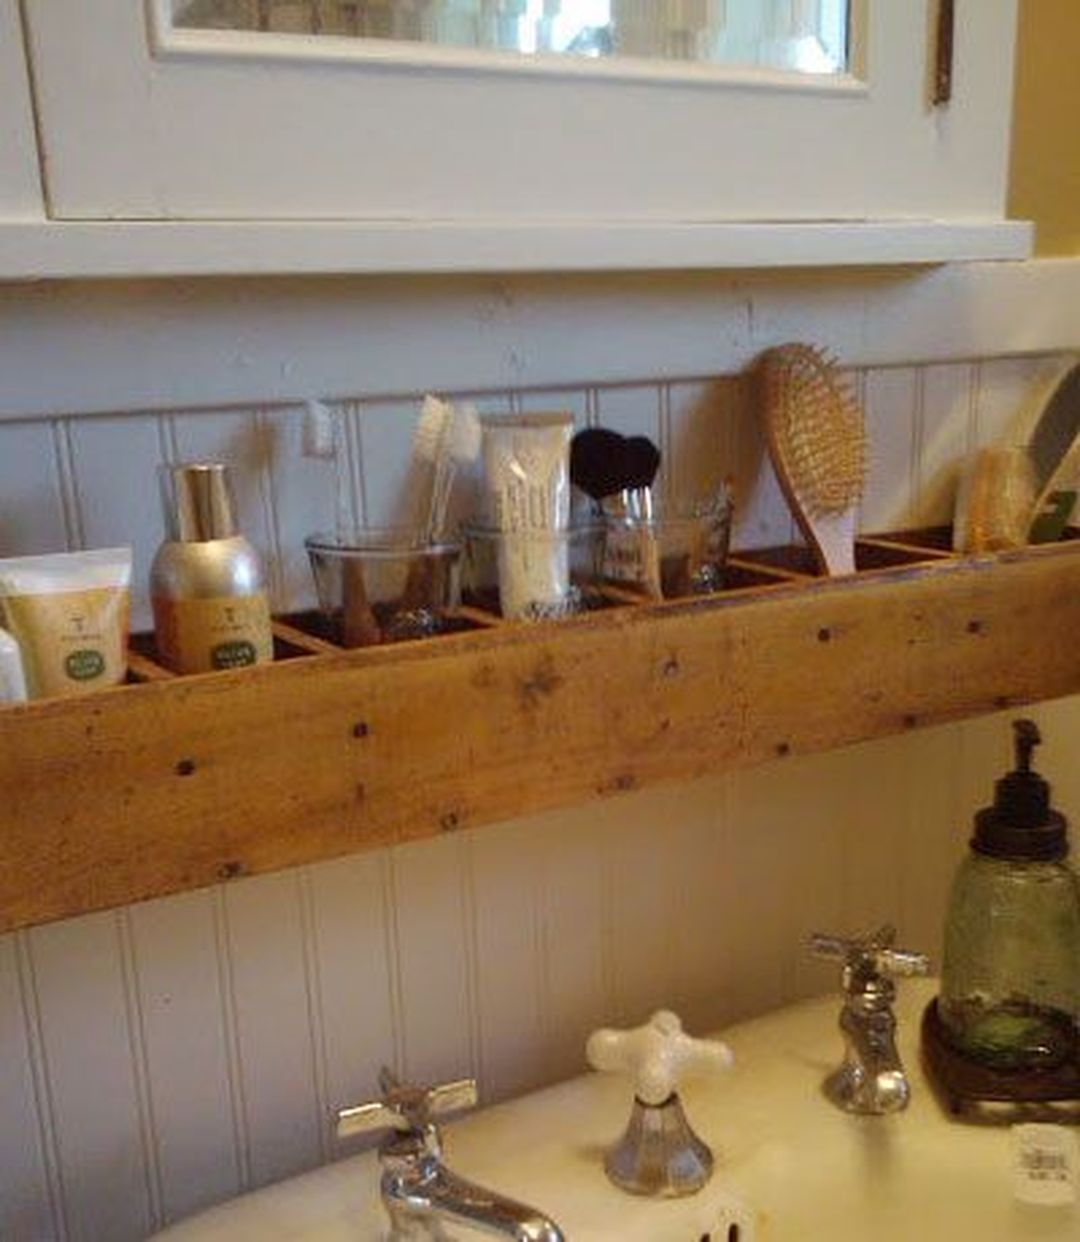 21 Amazing Shelf Rack Ideas For Your Home: 50 DIY Organization And Storage Hacks For Your Home Look